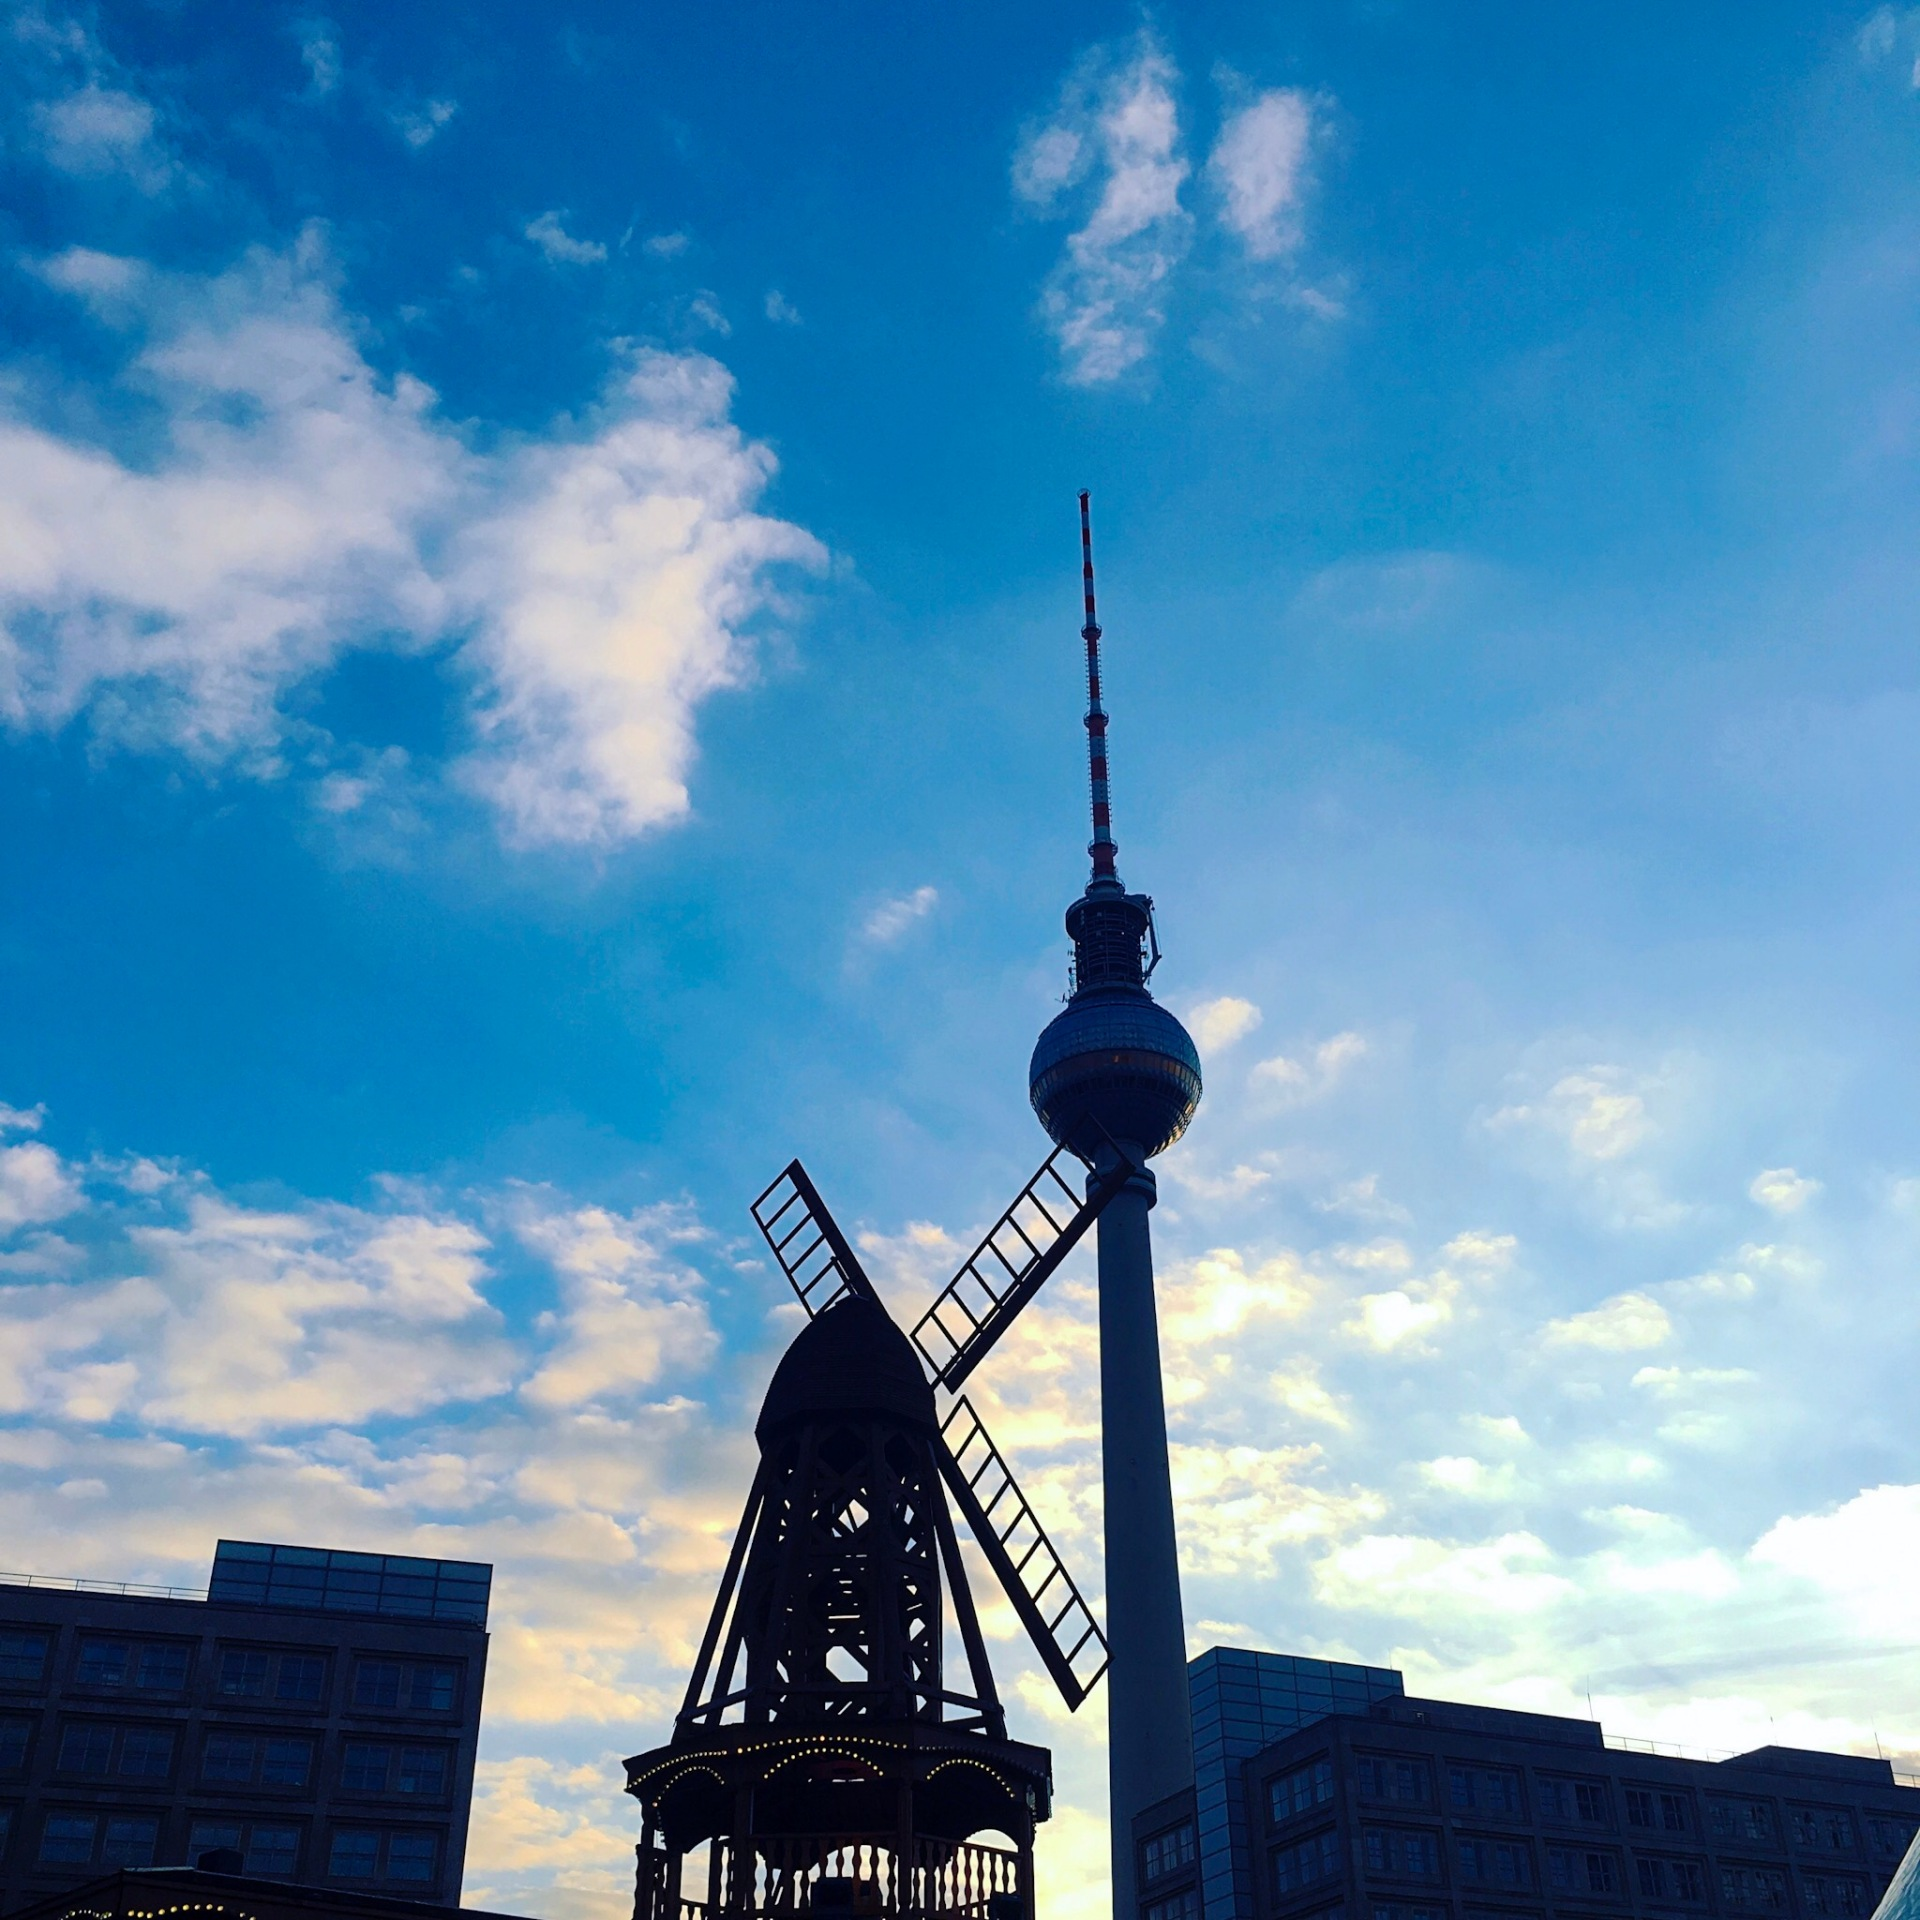 Berlin TV tower silhouette